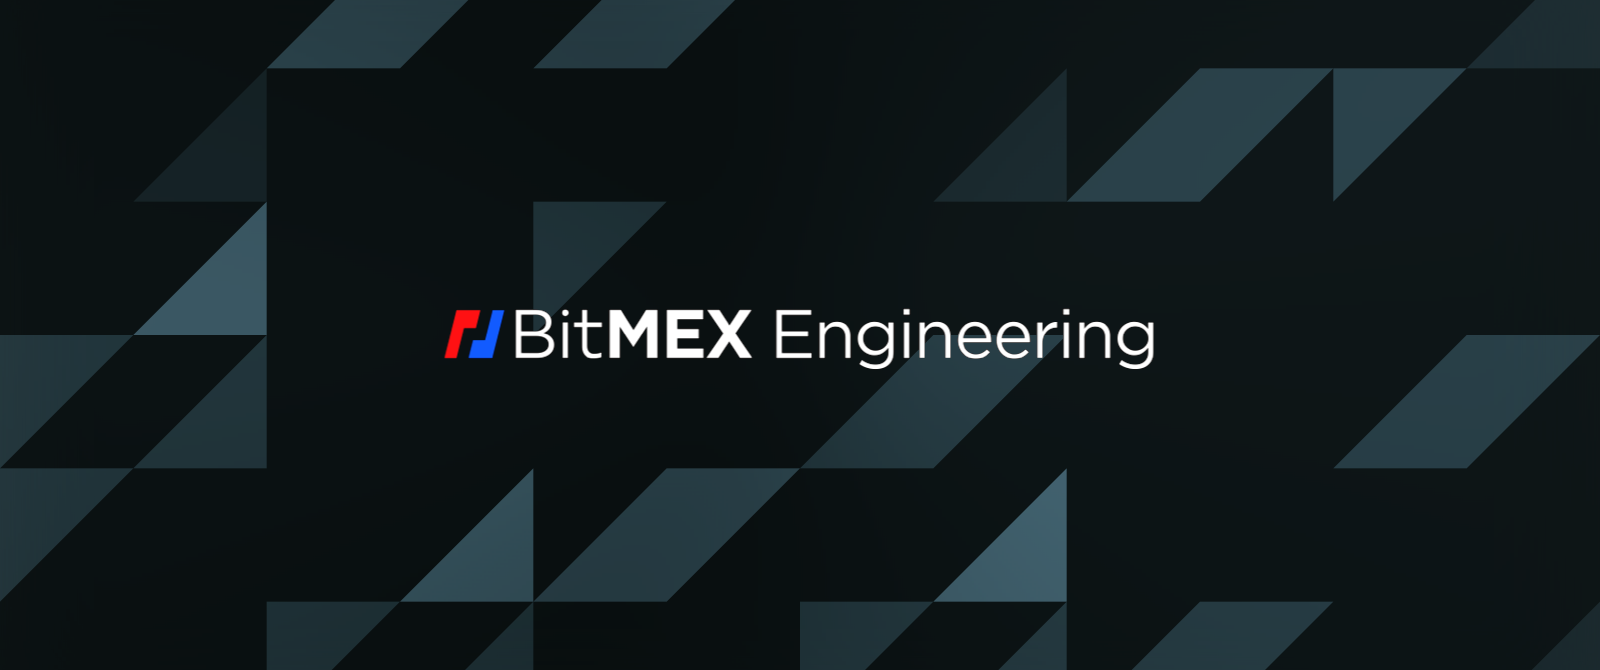 [BitMEX] BitMEX Engineers Stamp Out Market Data Latency - AZCoin News